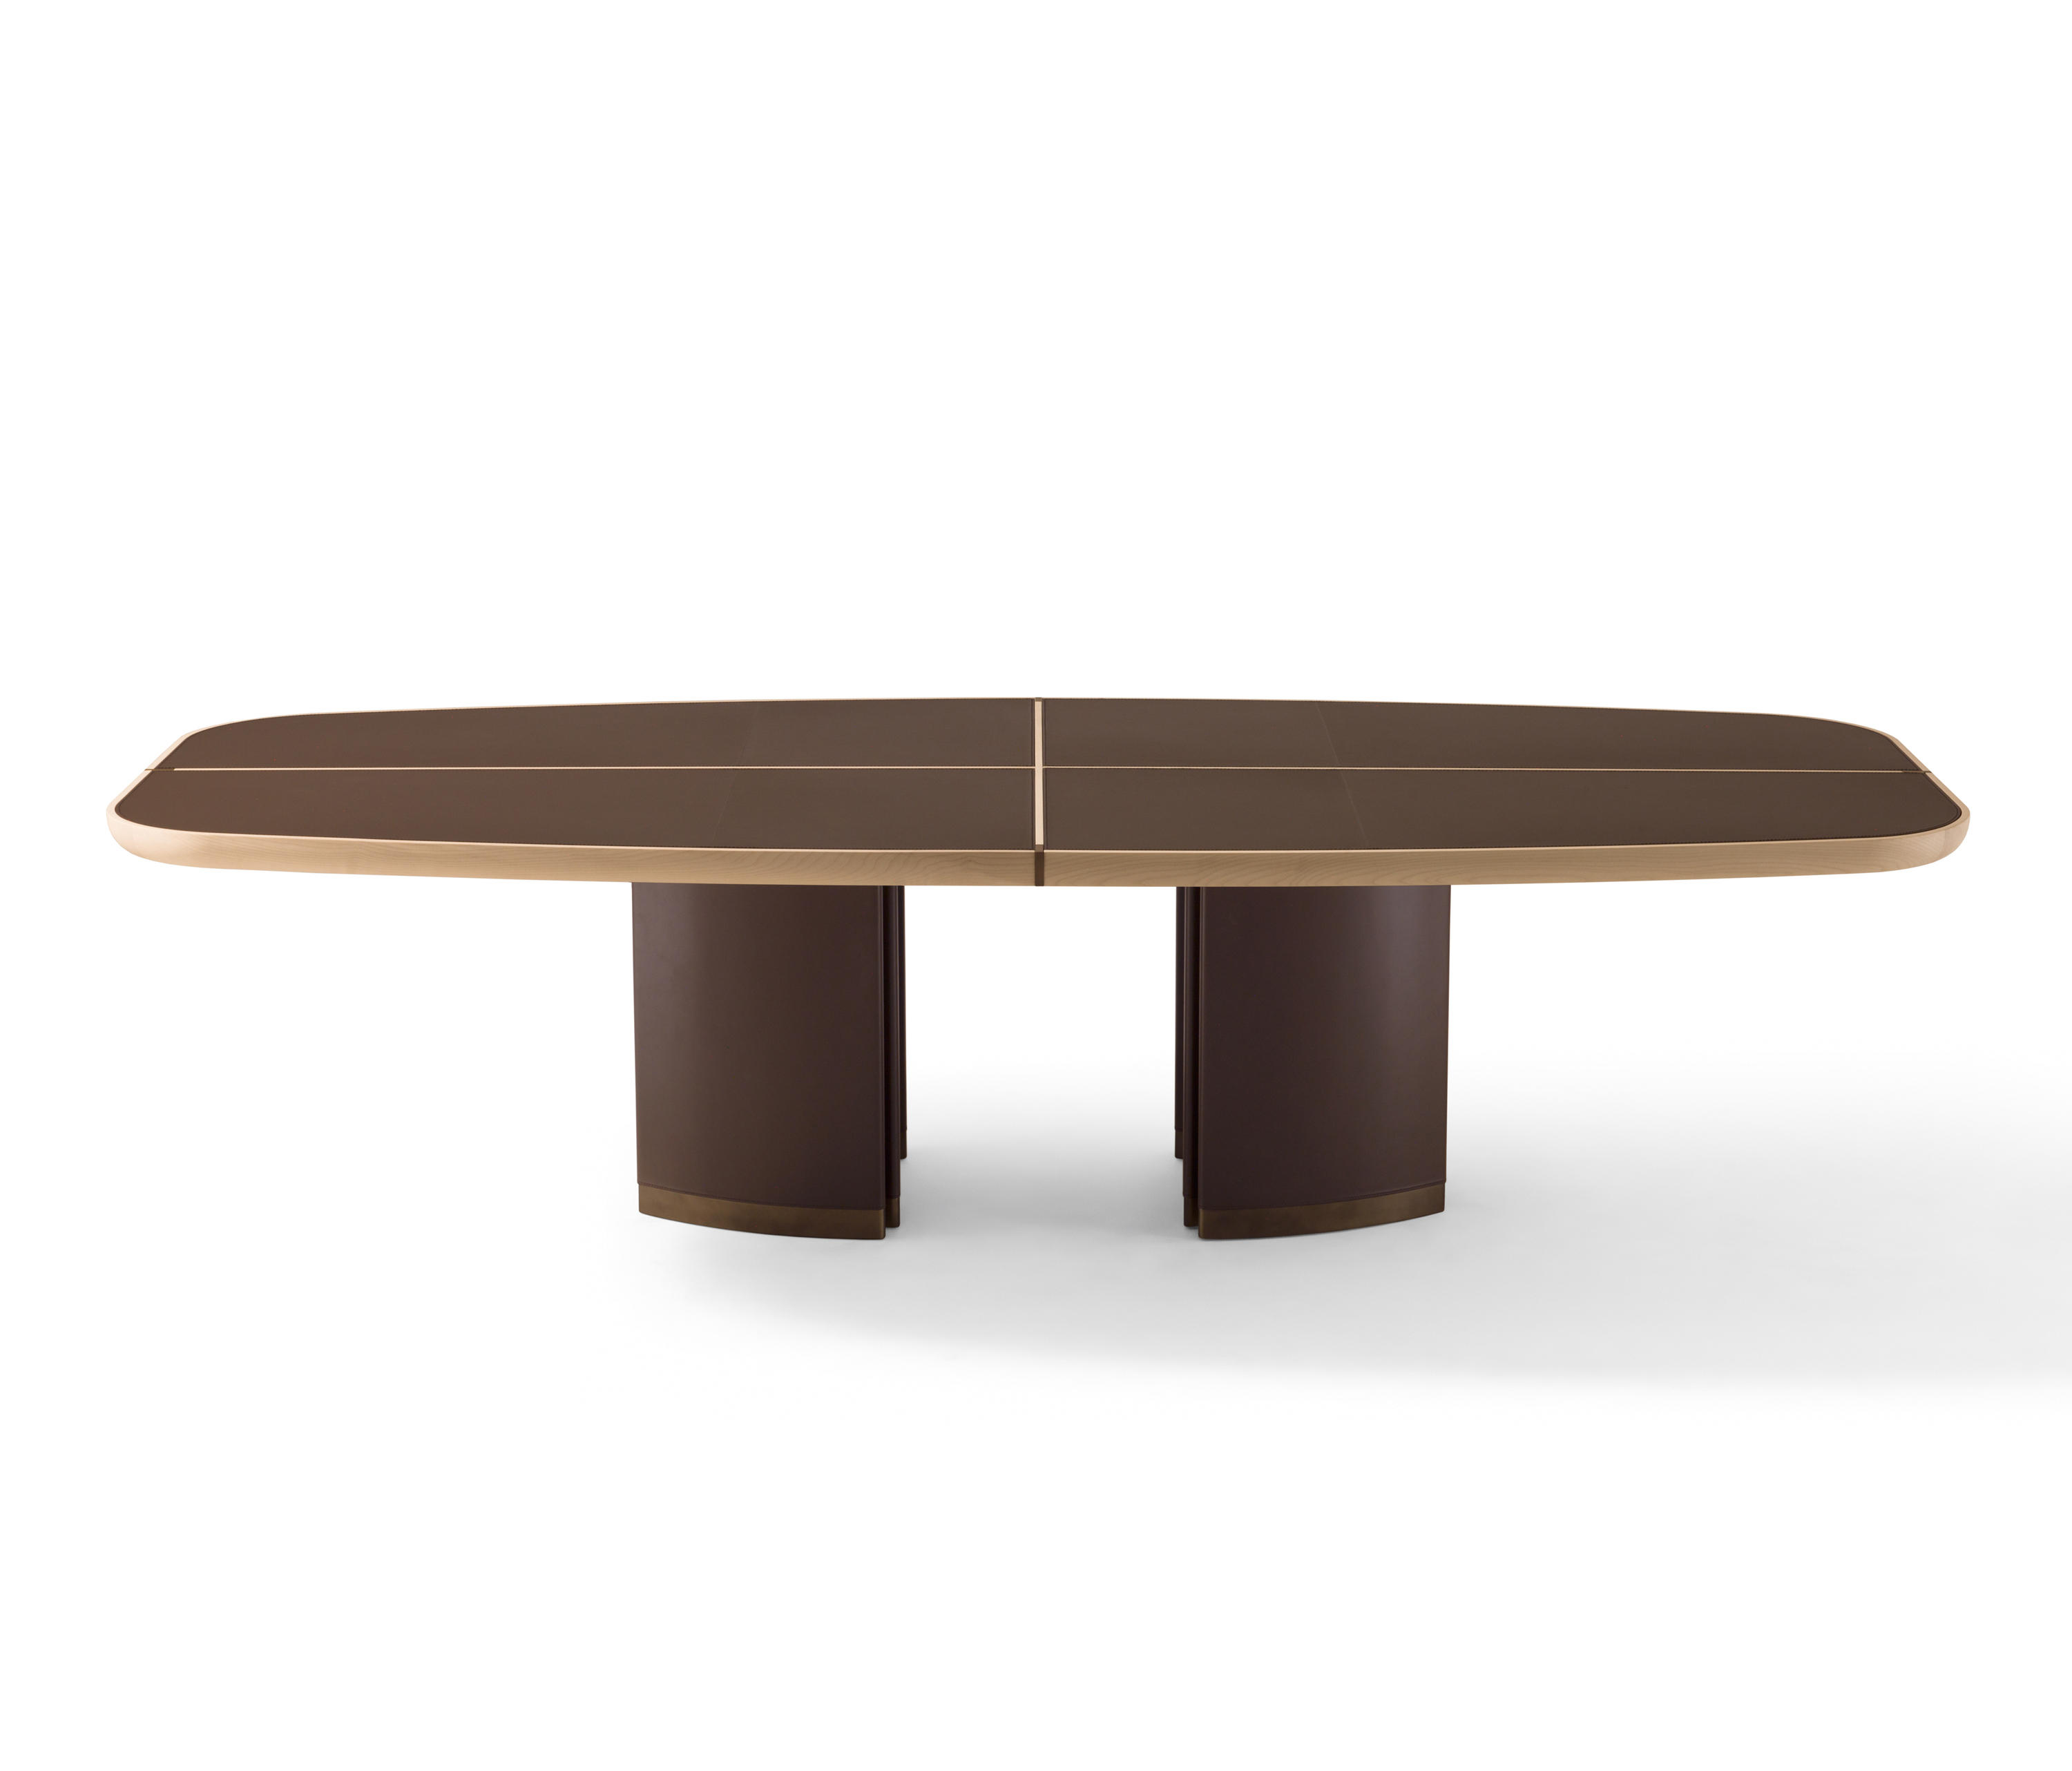 8196d50dfc899 GORDON TABLE - Dining tables from Giorgetti